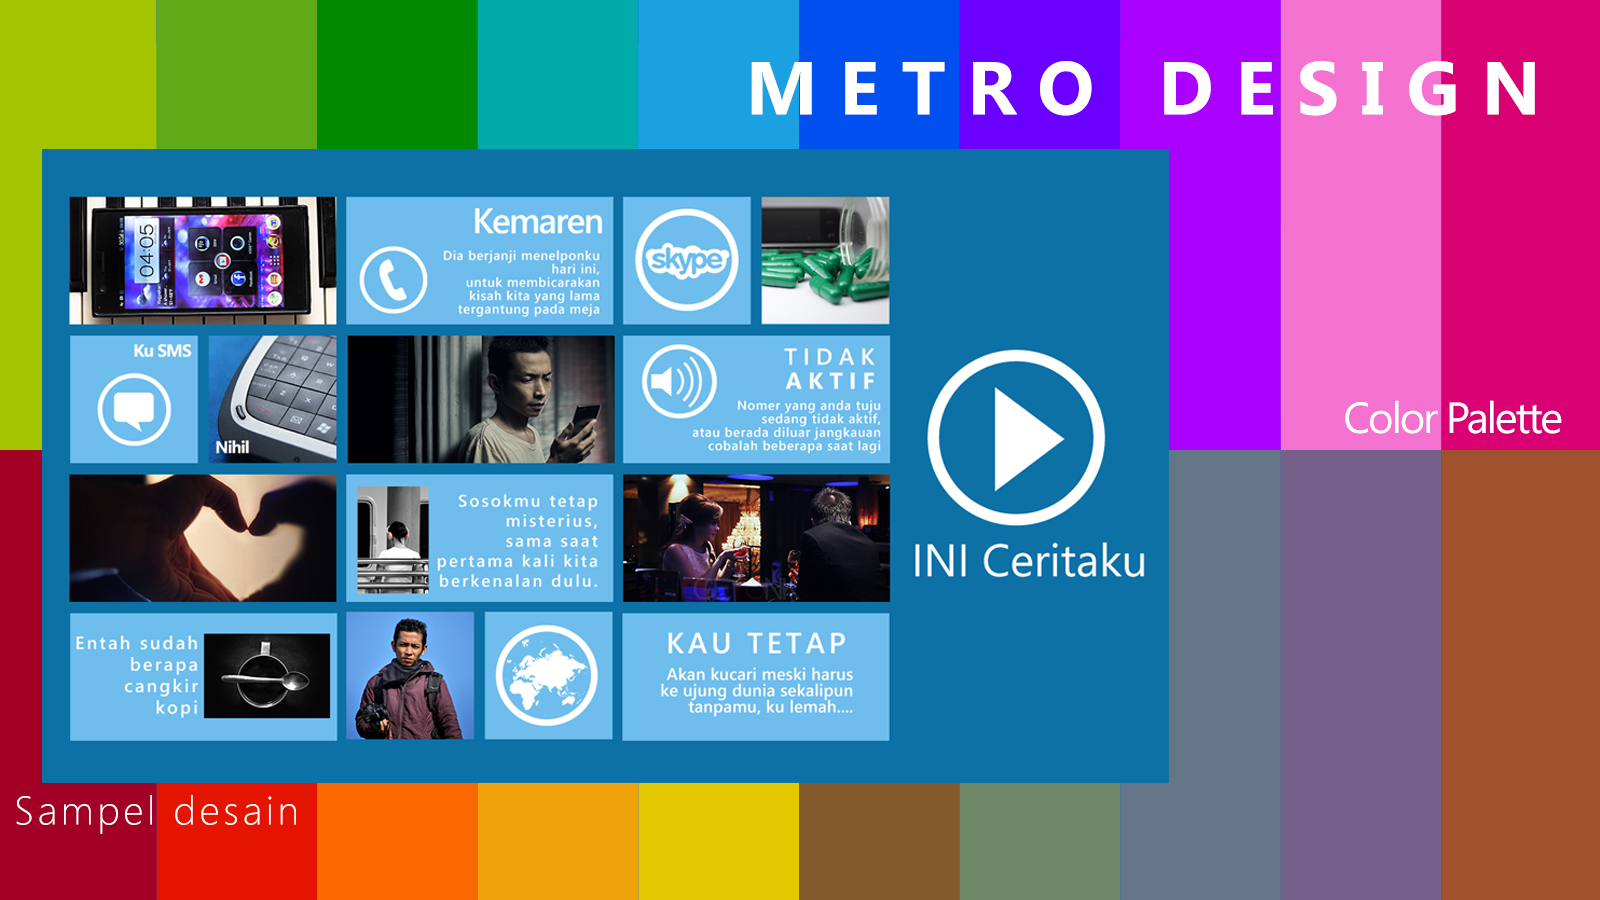 Sampel metro design, dan color palette-nya